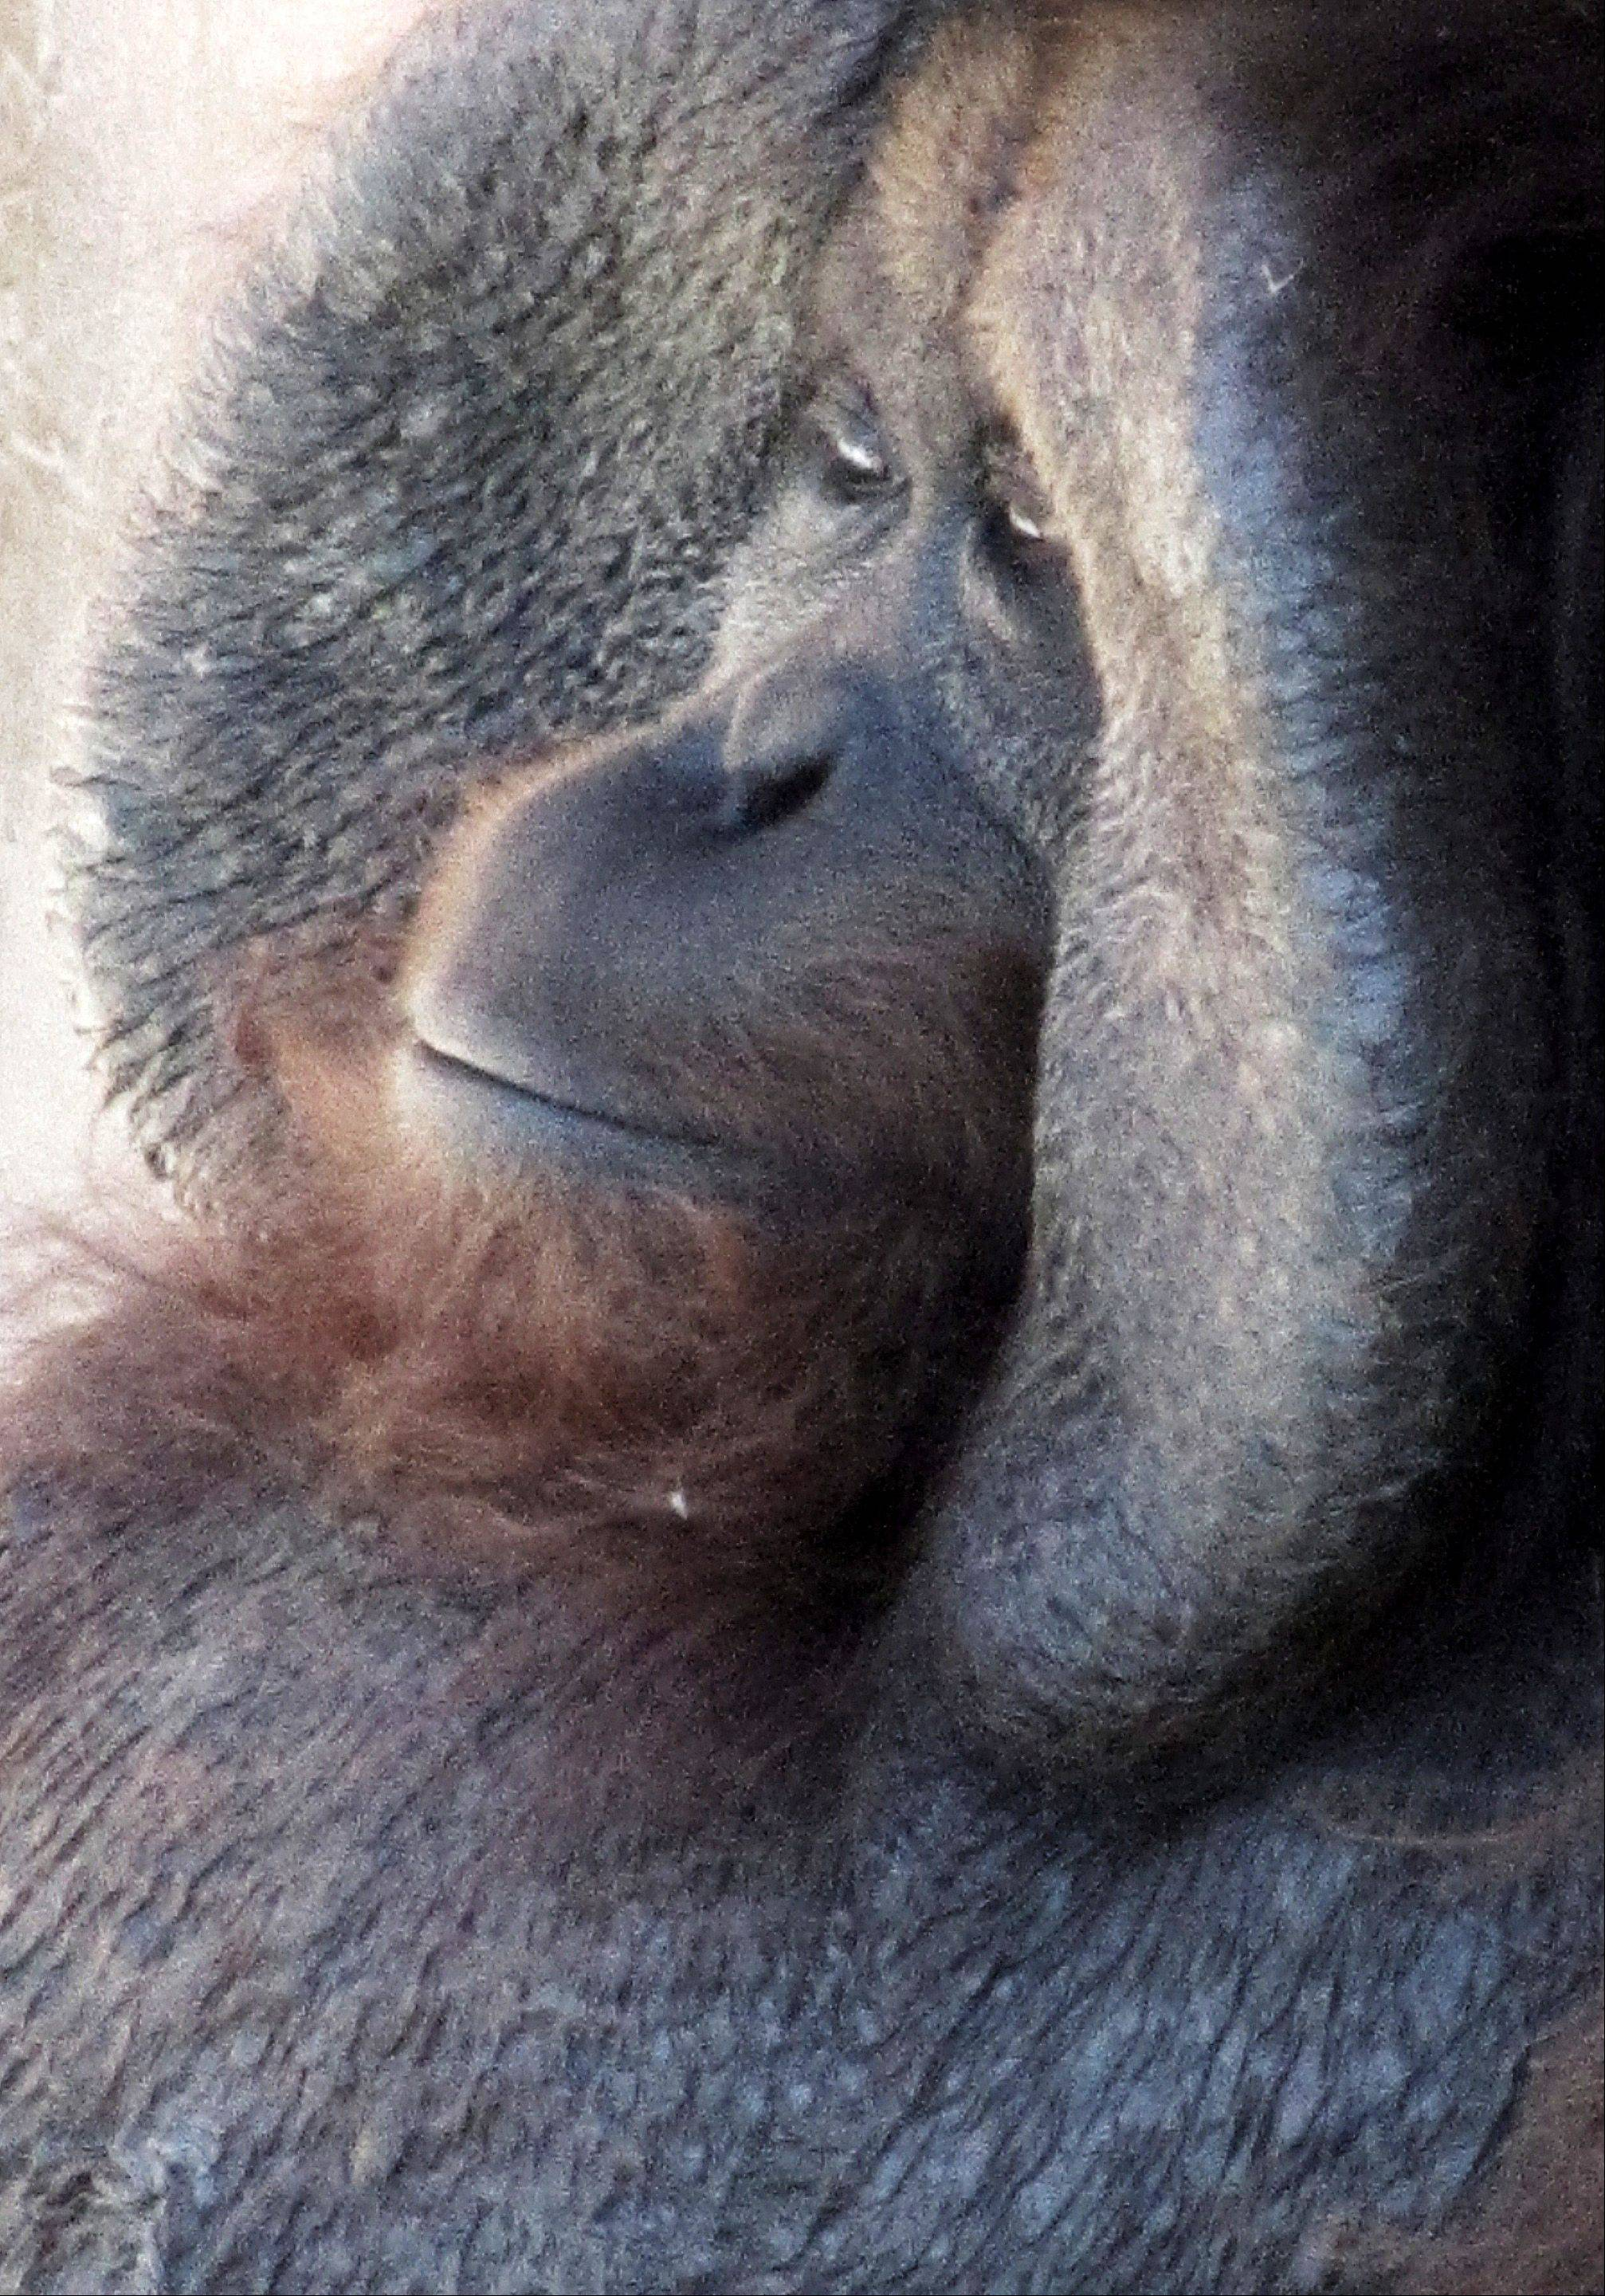 This was taken at the Little Rock Arkansas Zoo. The orangutan was really checking me out as I snapped his photo. I wonder what he was thinking?